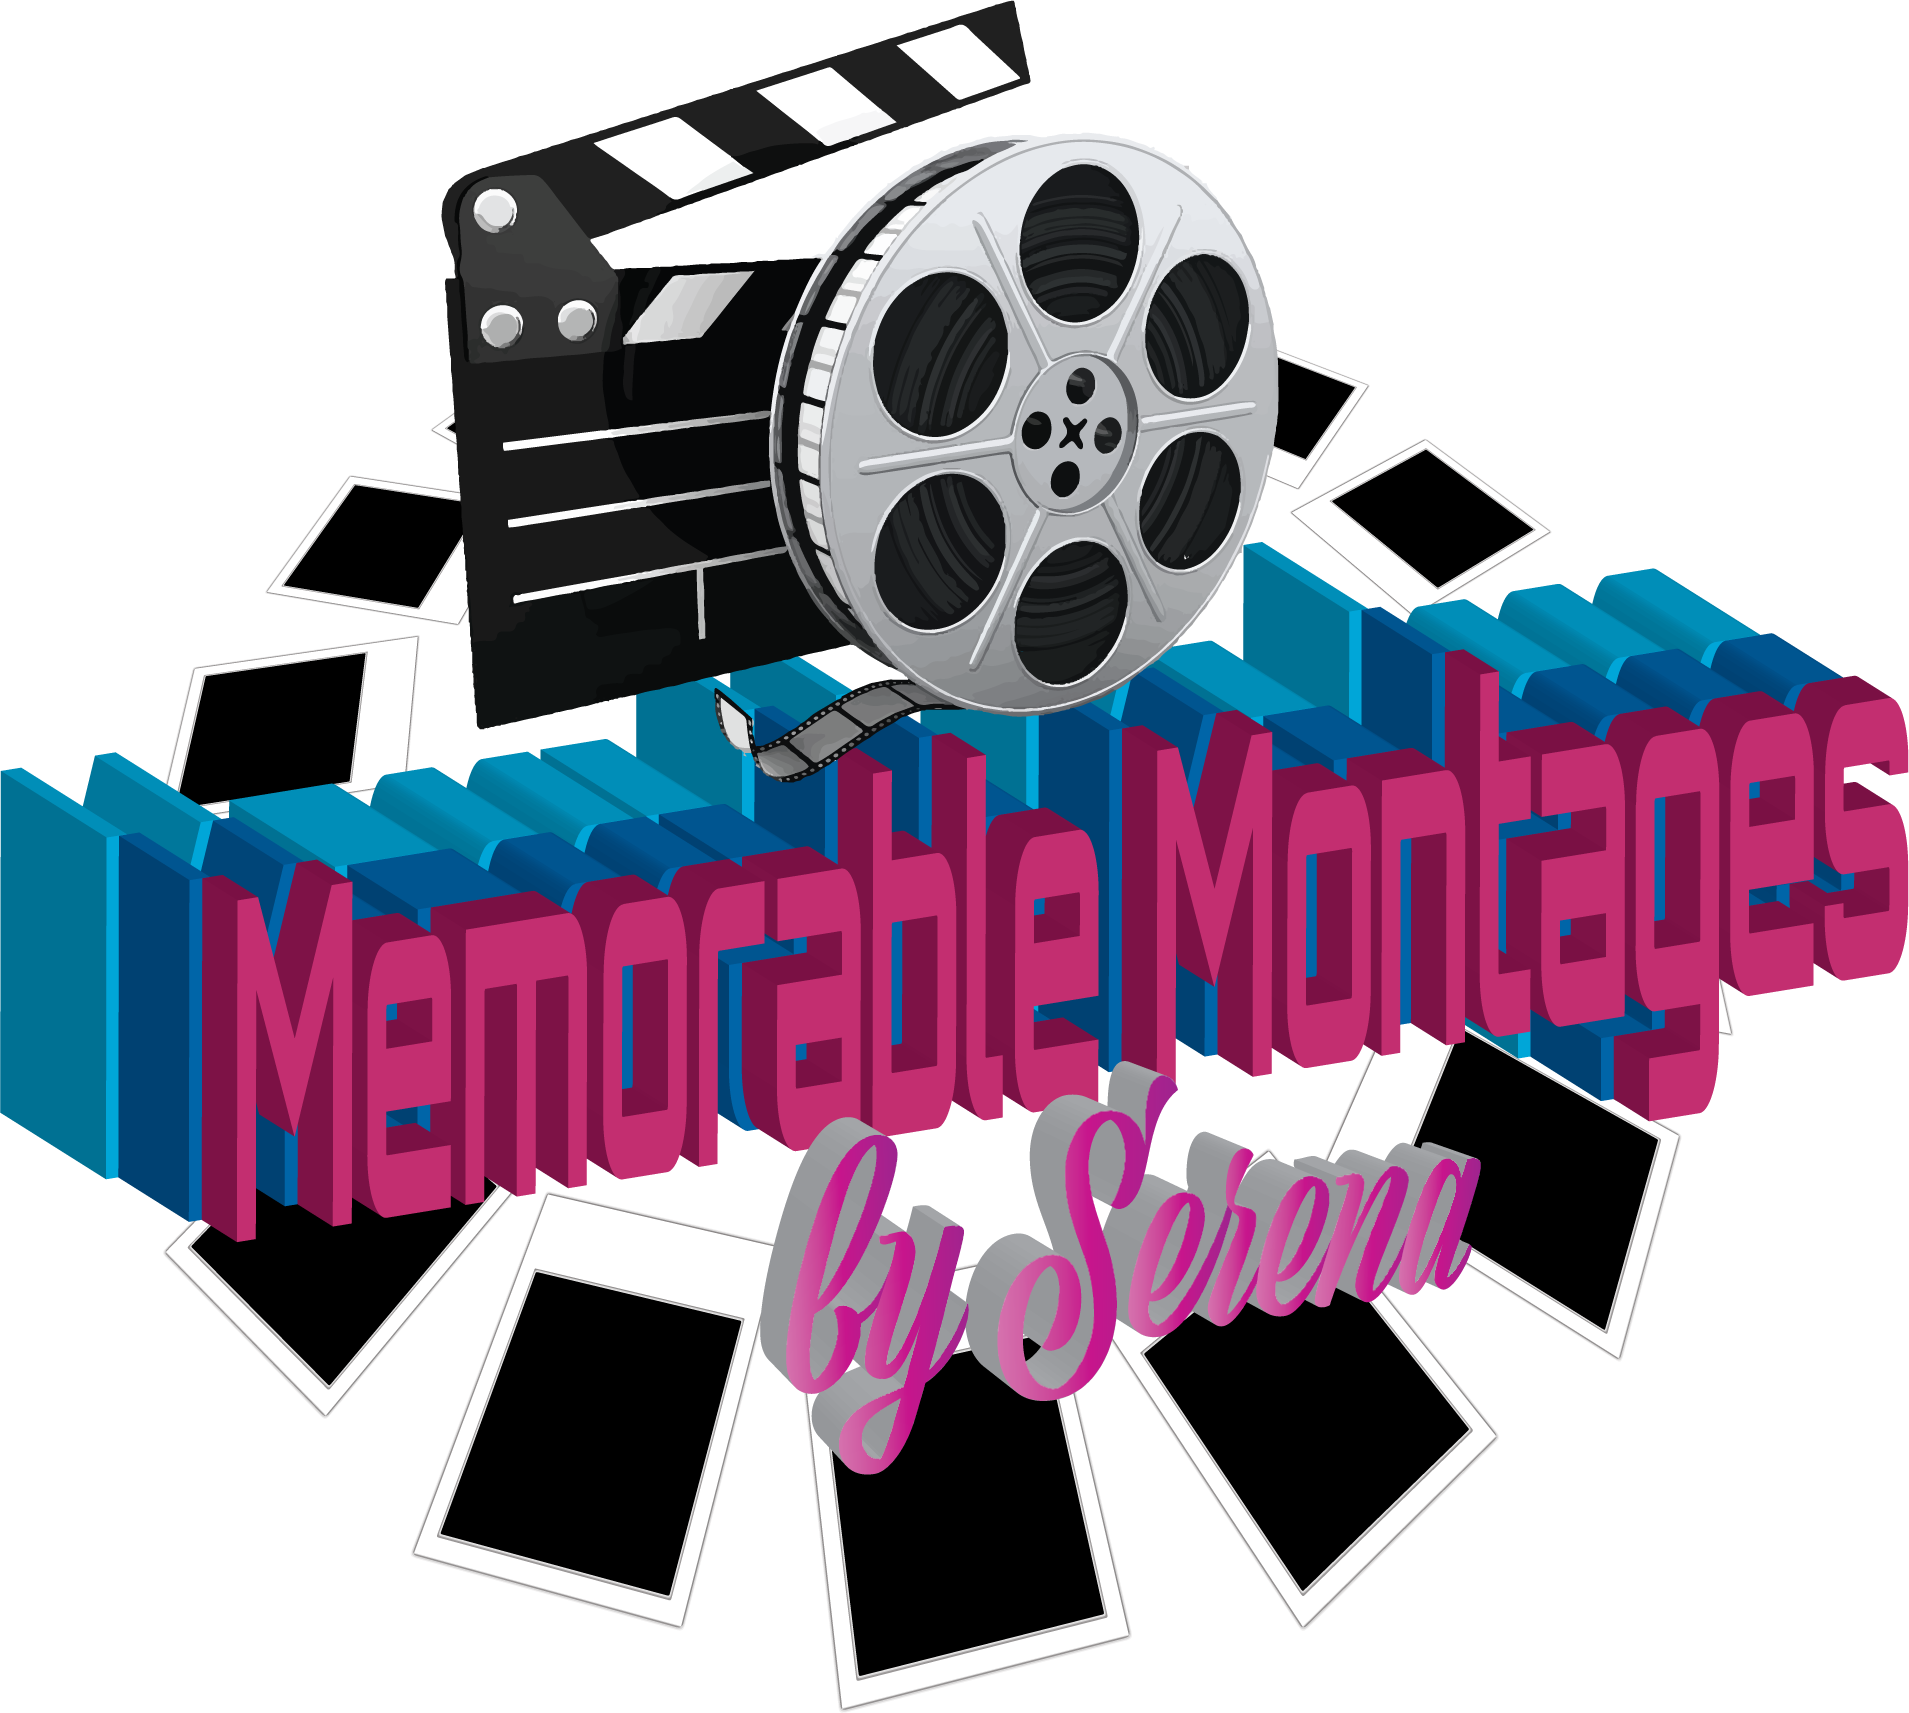 Memorable Montages